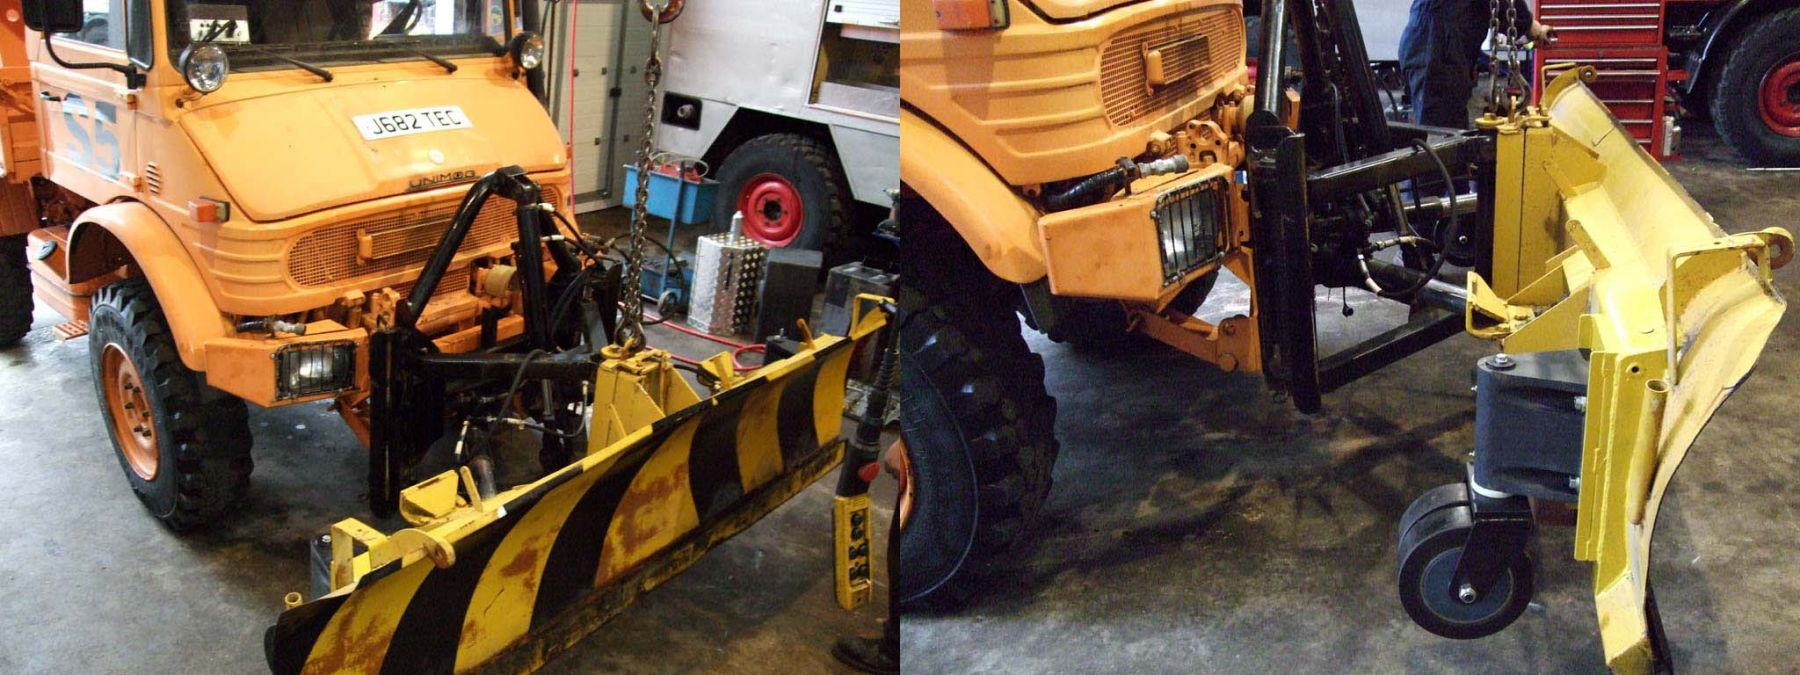 Unimog Implement Modifications